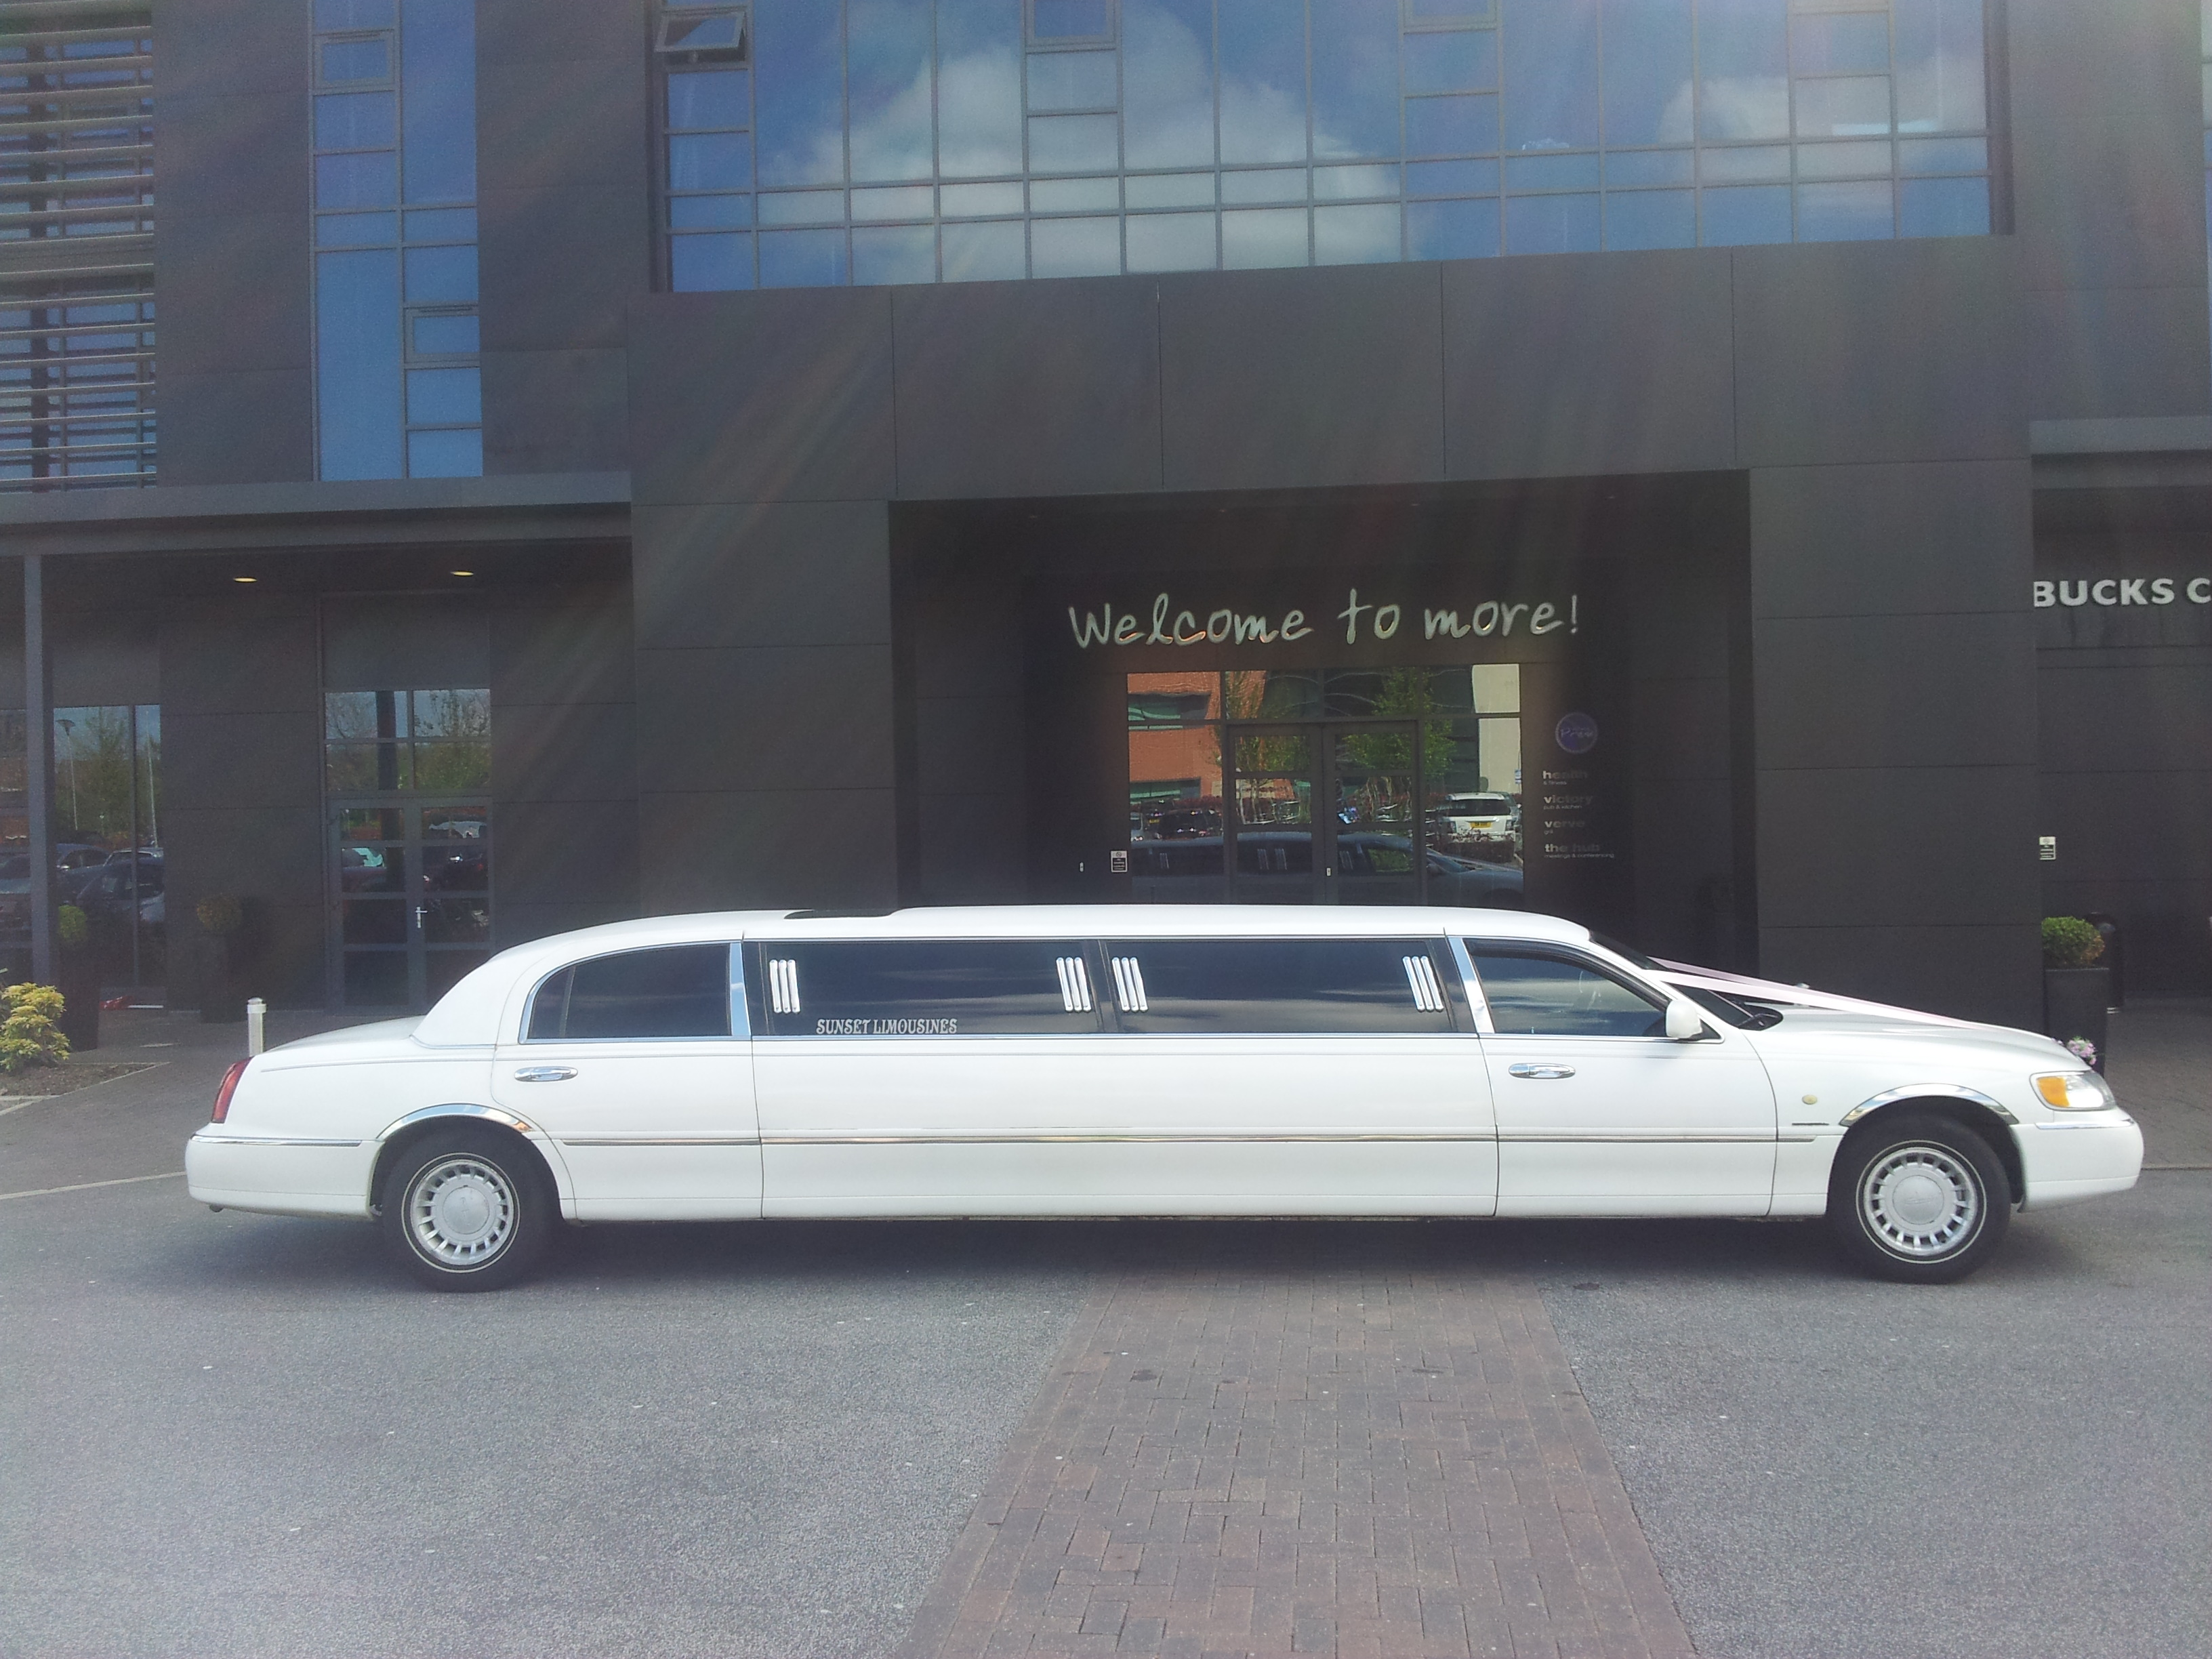 Enjoy A Brilliant Day Out In Leeds In A Limousine